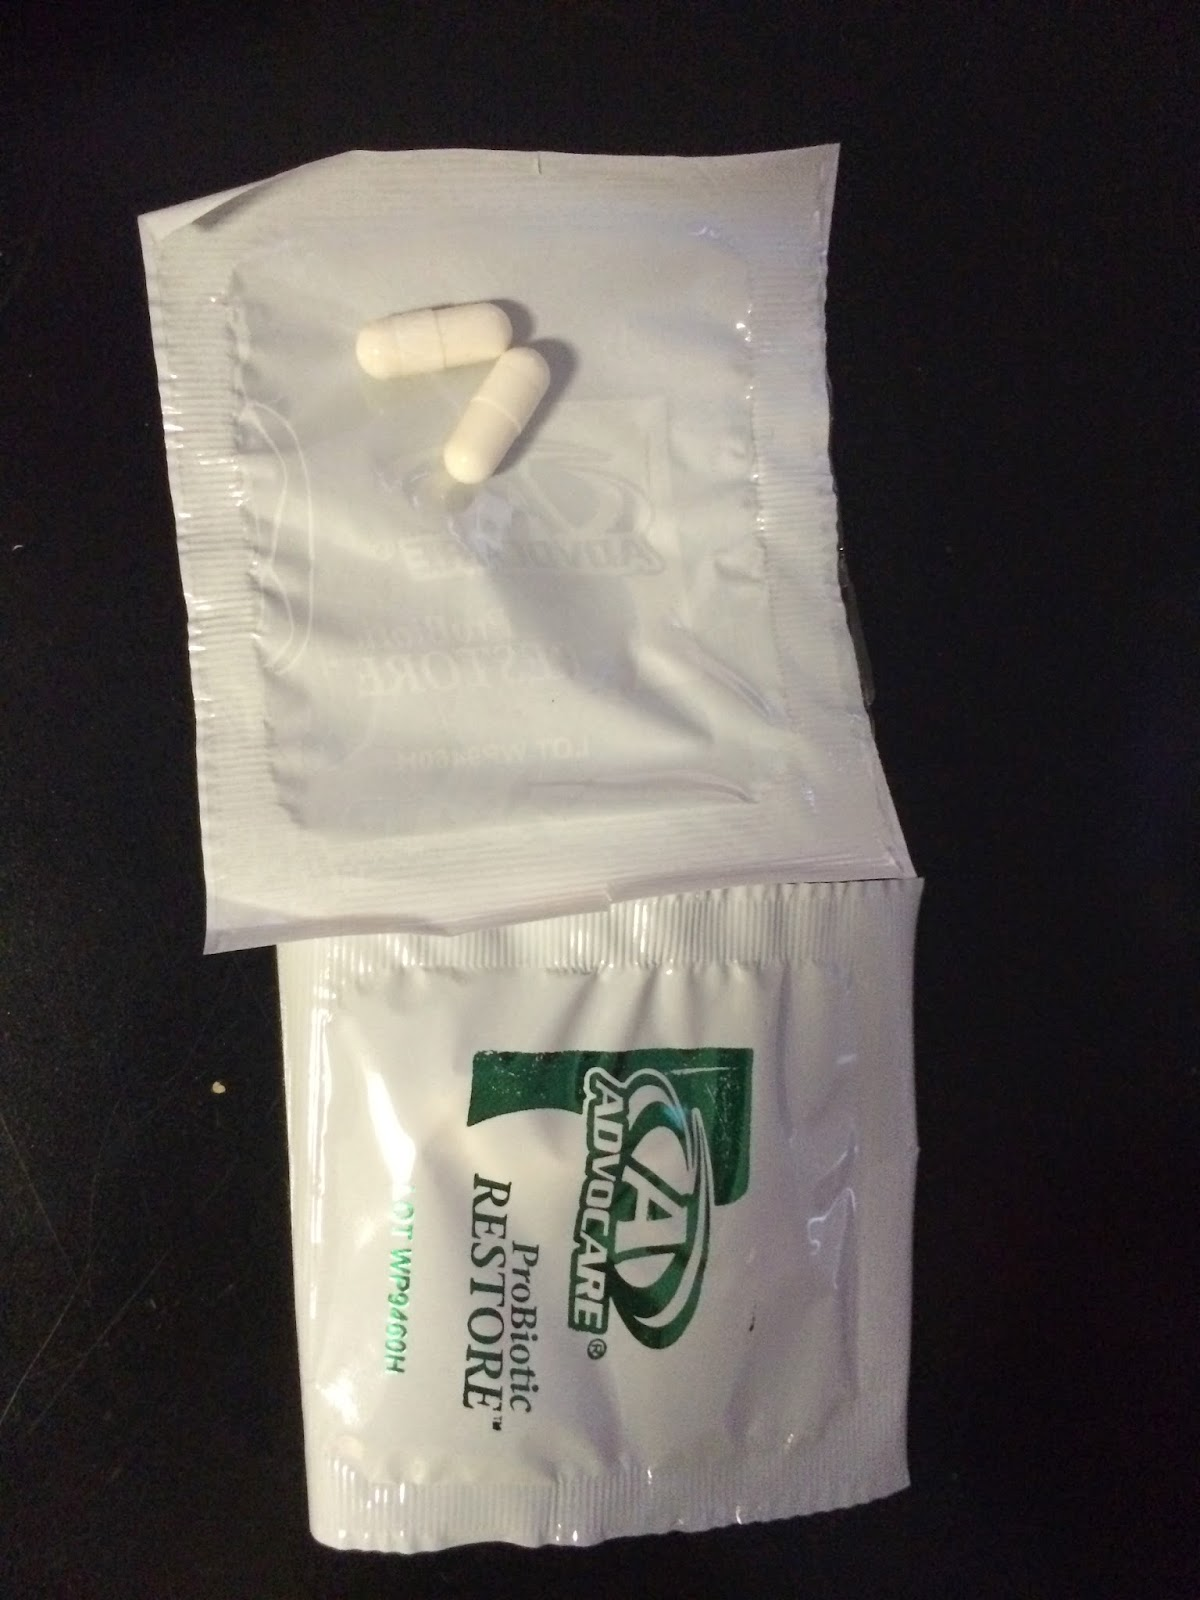 Neurontin used with xanax